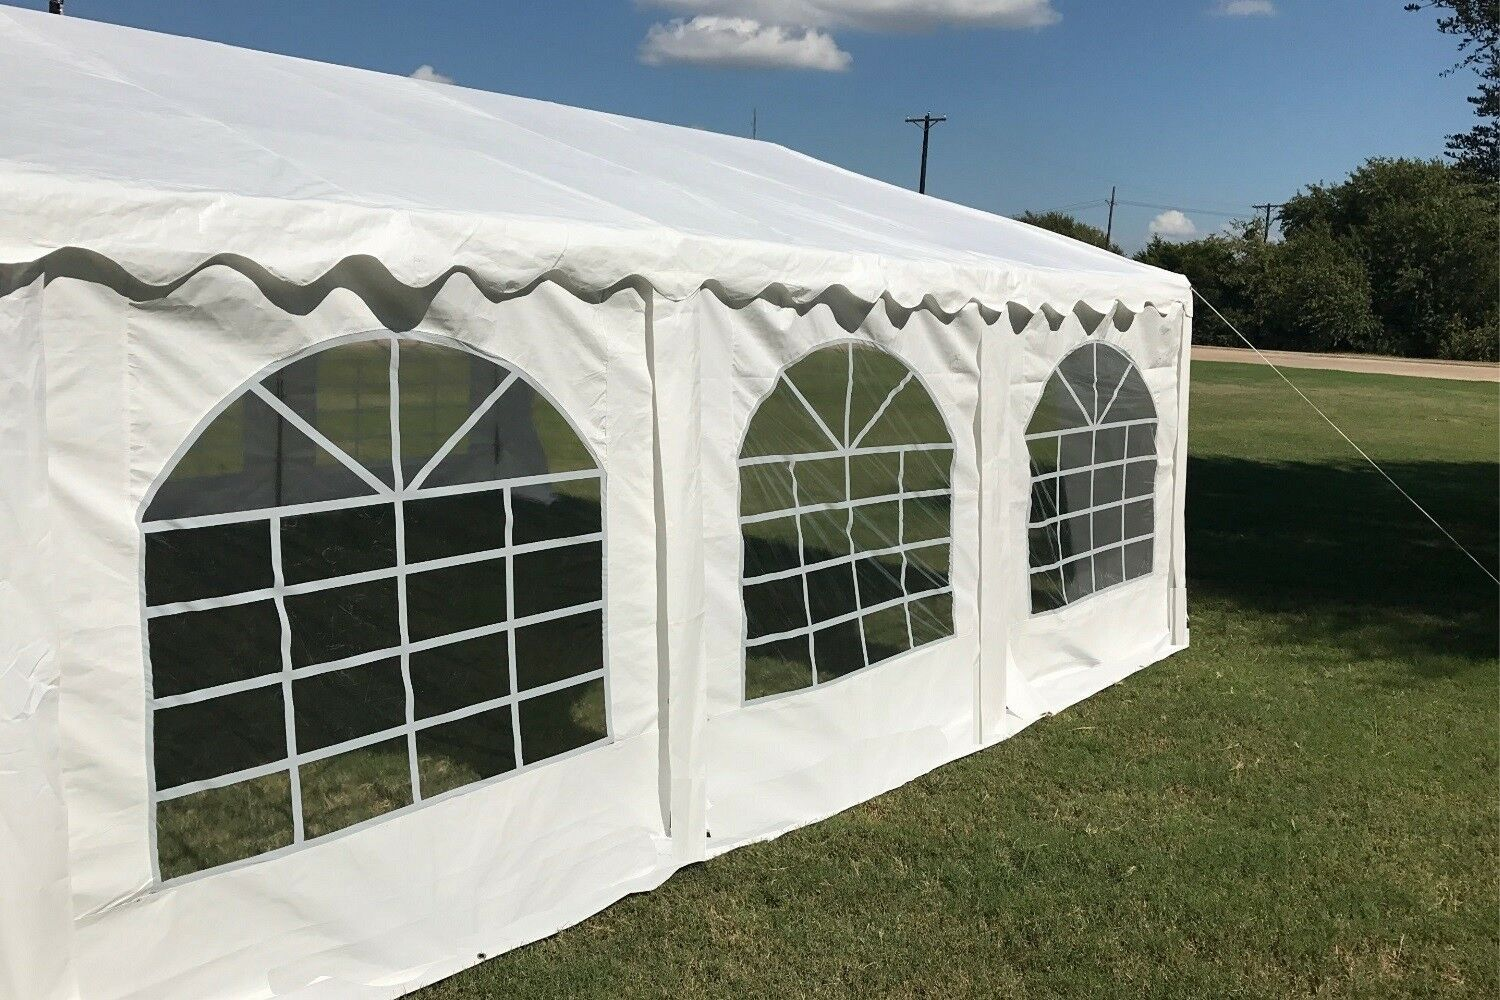 20 x 20 budget party tent canopy gazebo white. Black Bedroom Furniture Sets. Home Design Ideas